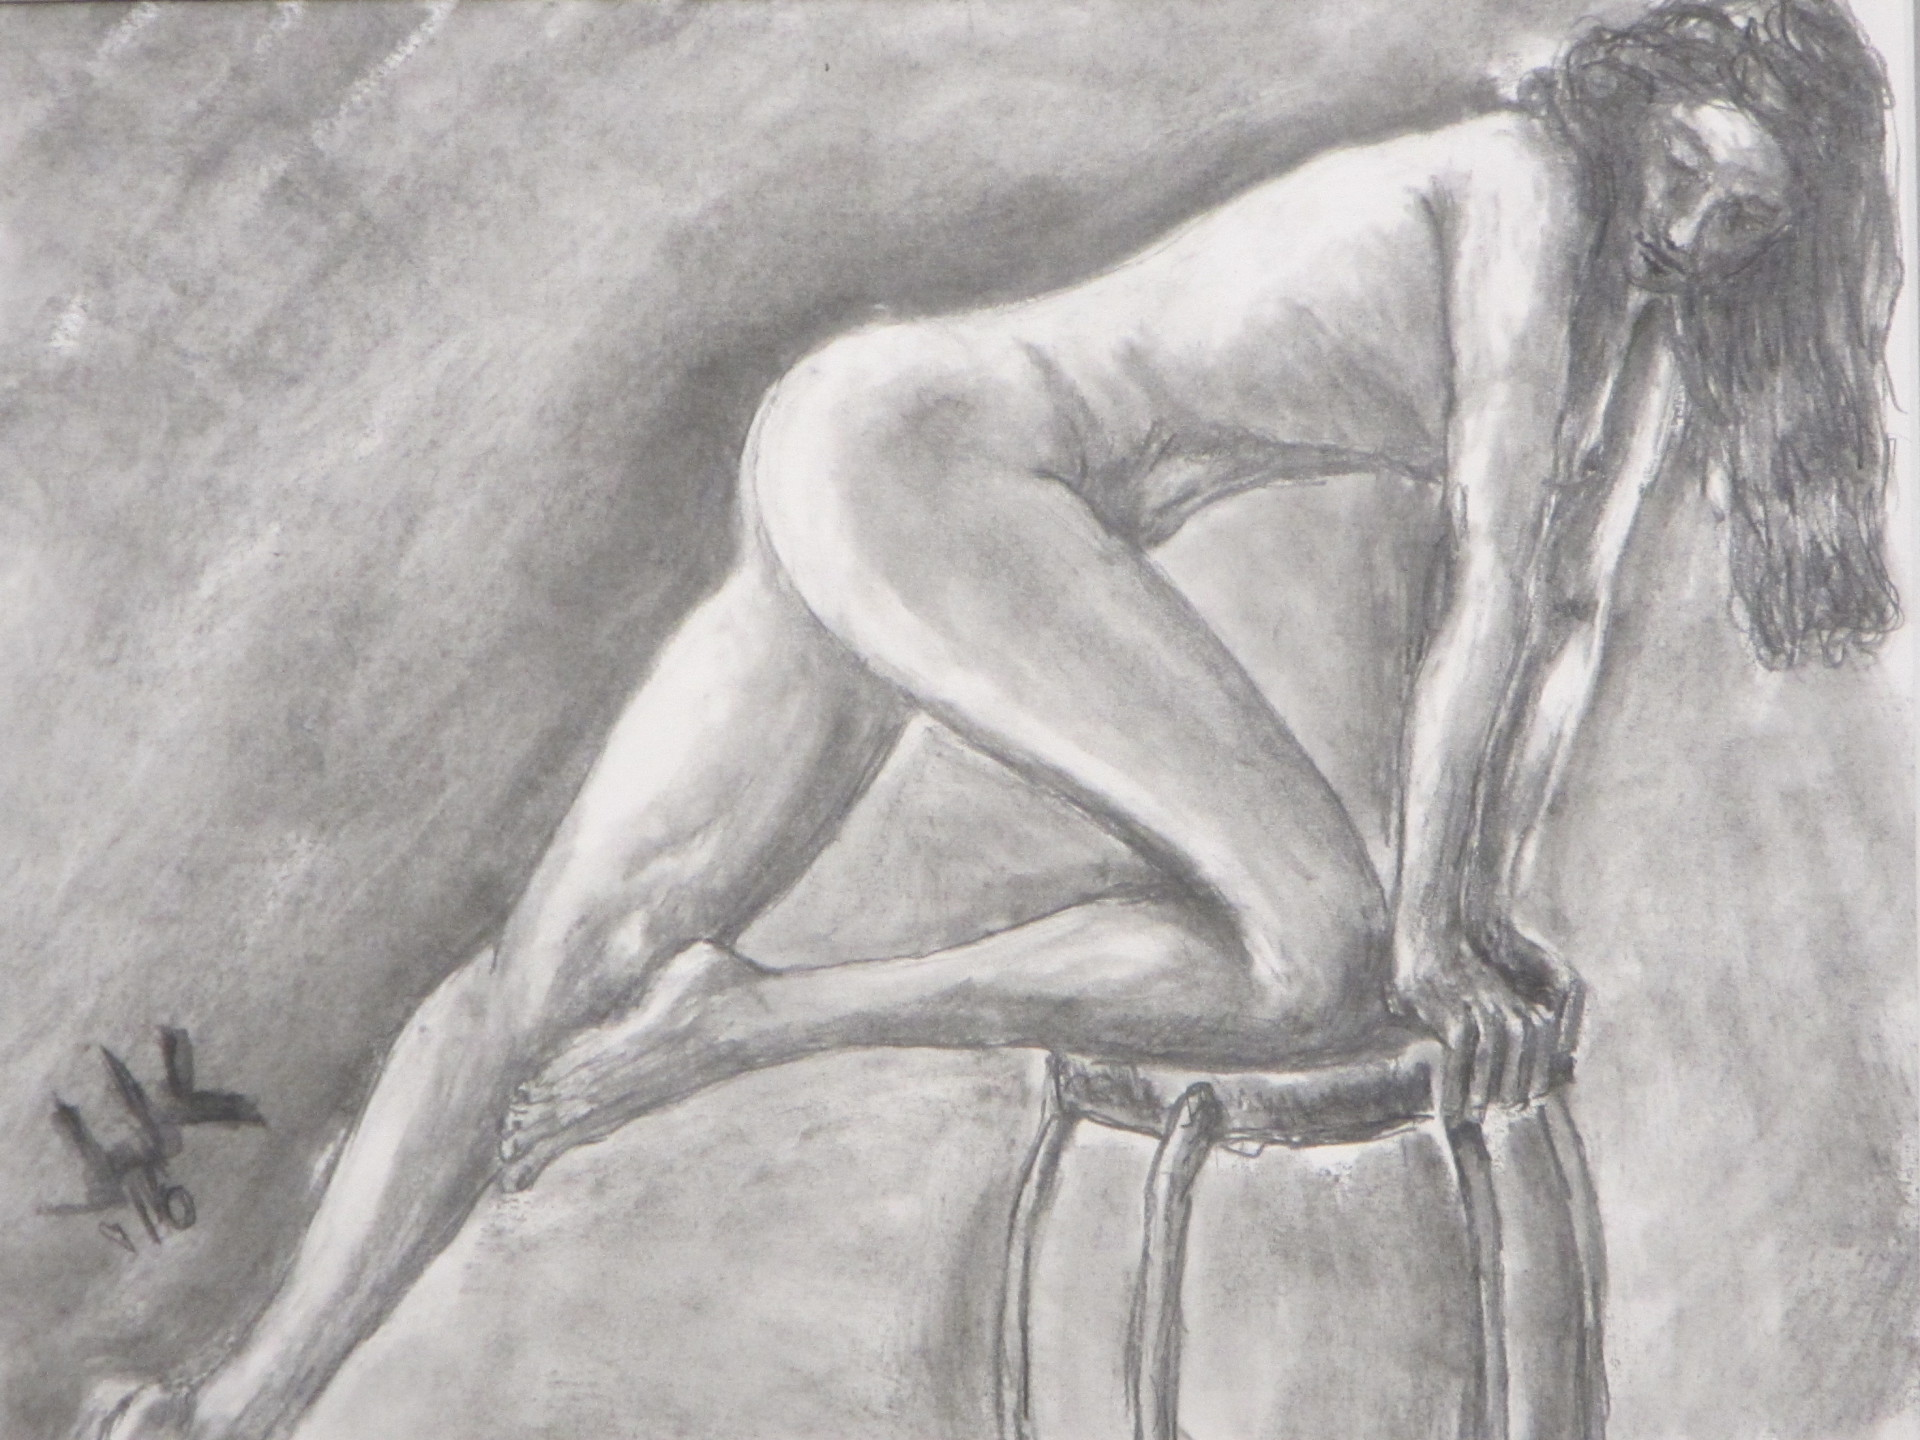 Pencil drawing of a nude woman leaning on a stool with her hands and one knee.